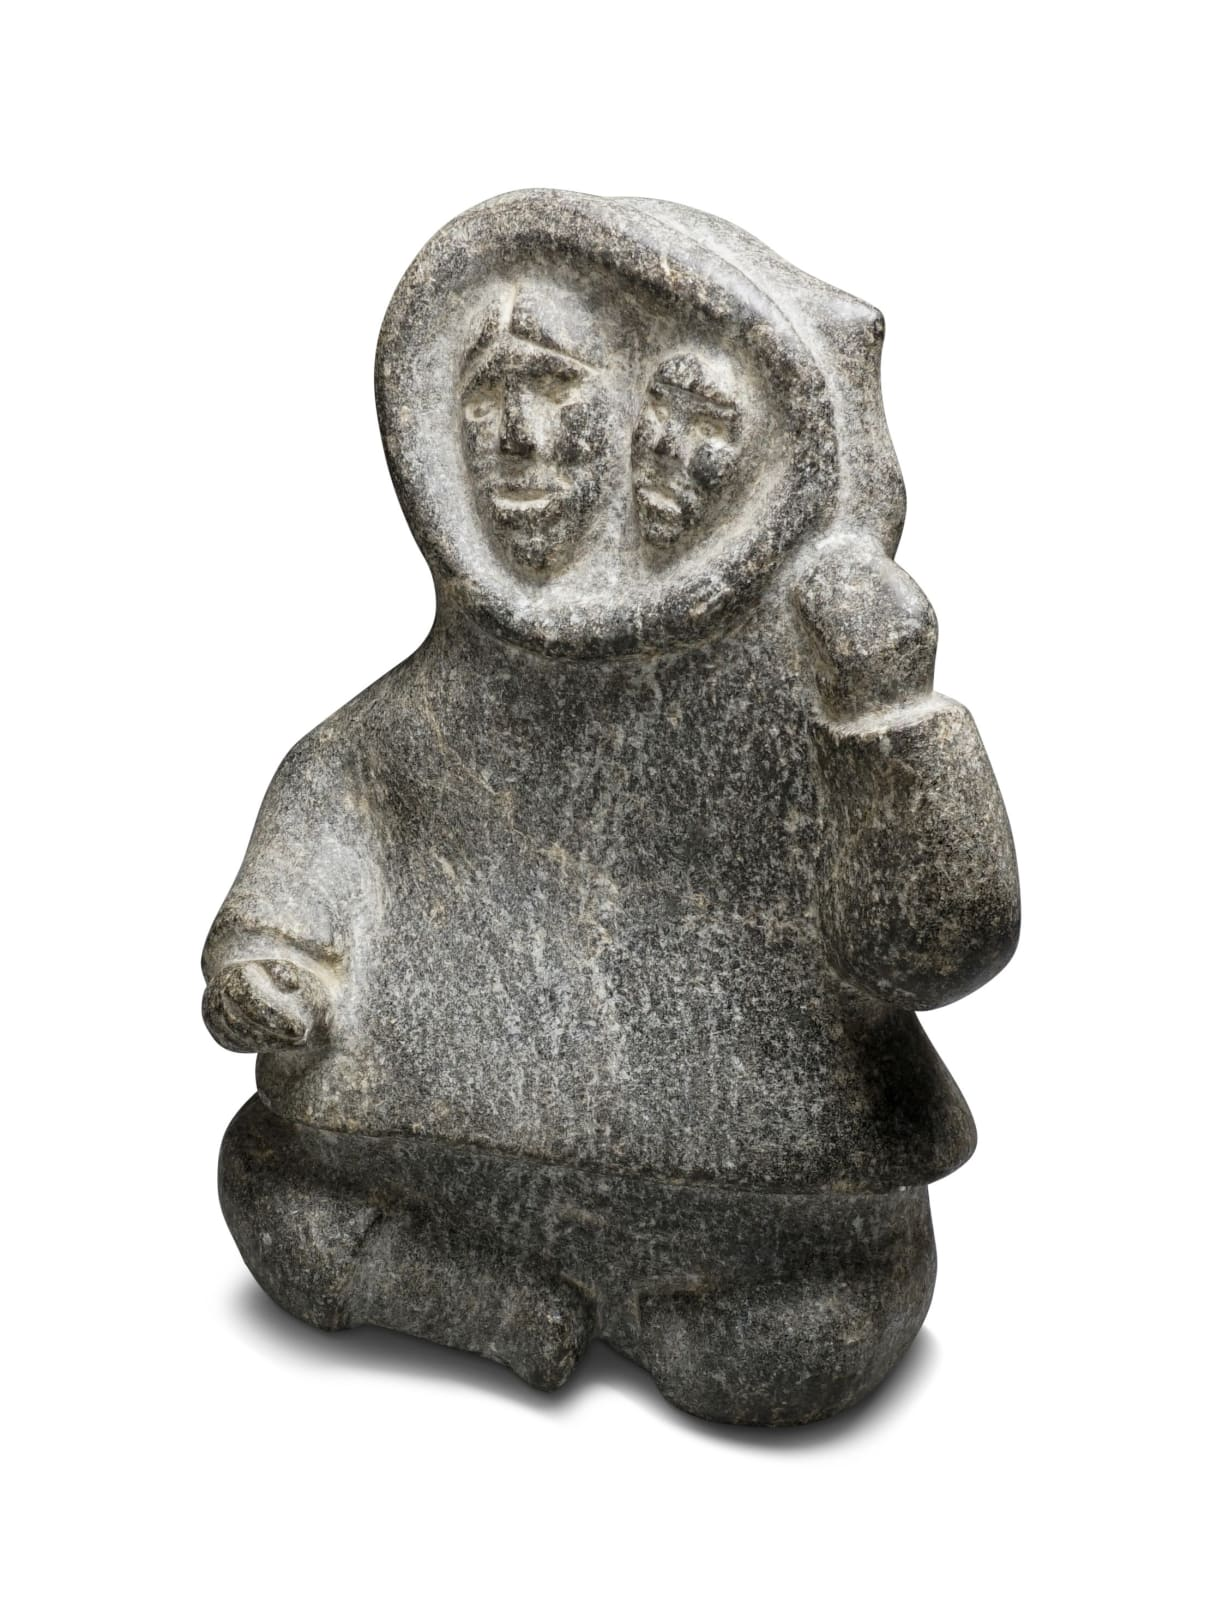 LOT 8 UNIDENTIFIED ARTIST, KINNGAIT (CAPE DORSET) Mother With Child in Her Amaut, early-mid 1950s stone, 11 x 8 x 5 in (27.9 x 20.3 x 12.7 cm) ESTIMATE: $1,000 — $1,500